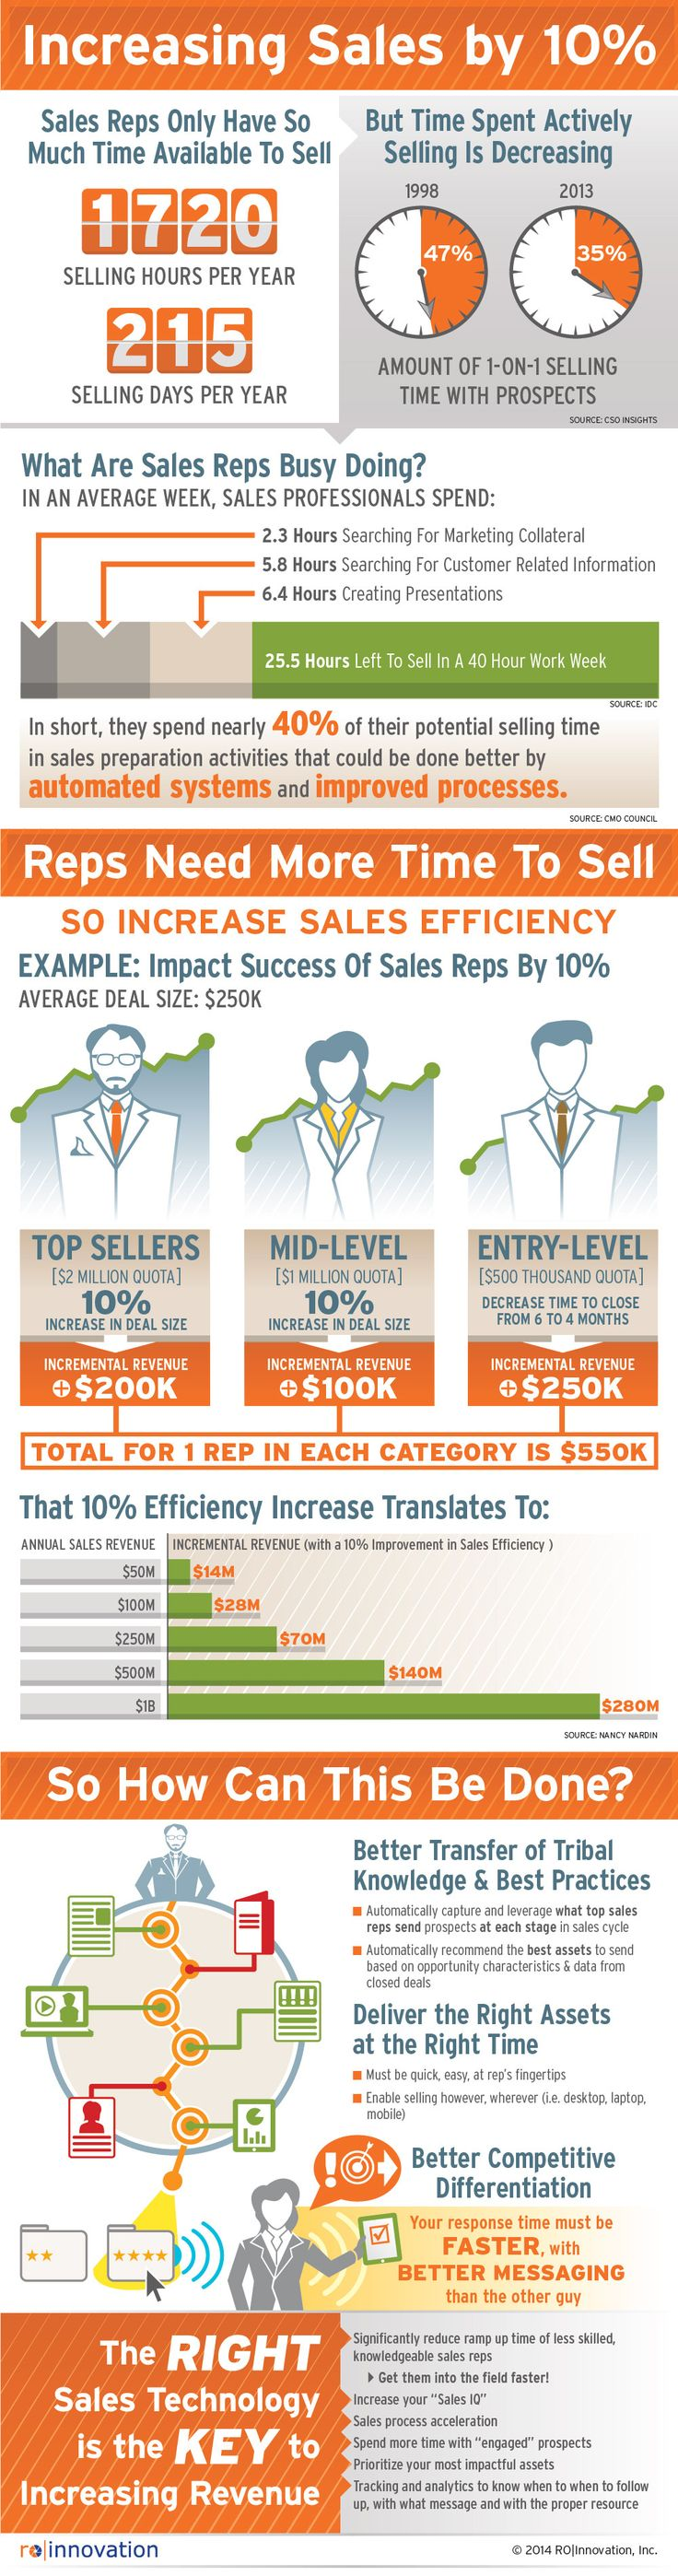 Key account managementdirect sales mapping vs - How To Increase Sales By 10 Percent Infographic